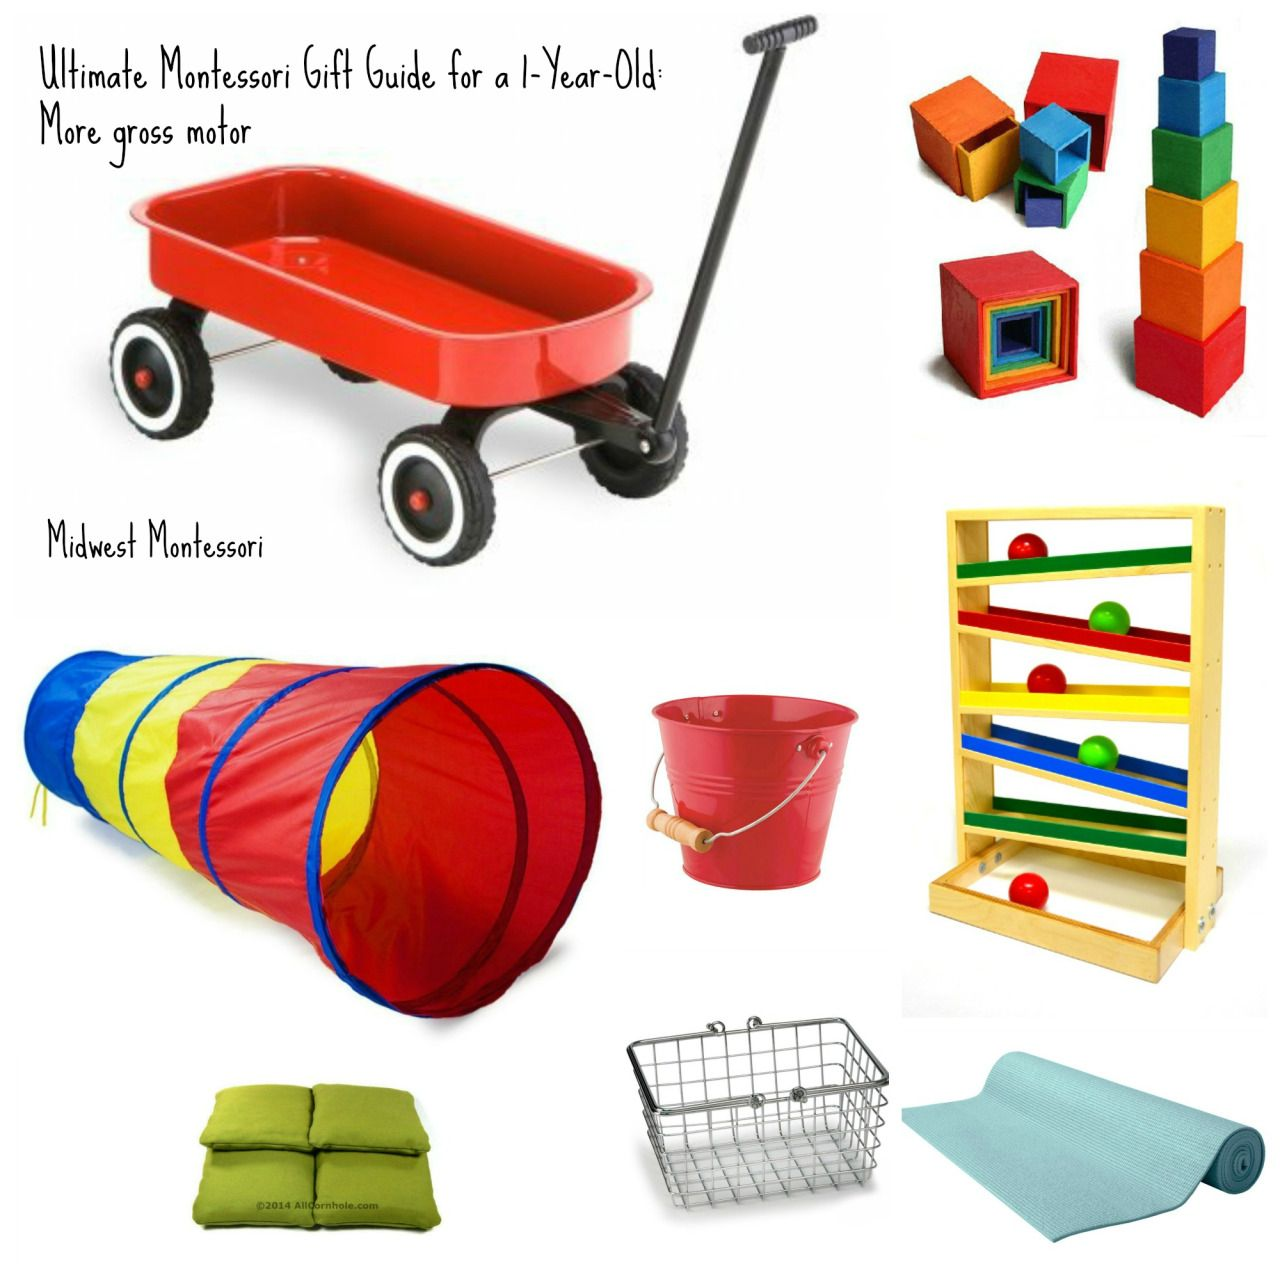 Montessori gift guide for 1 year olds- all areas of development ...